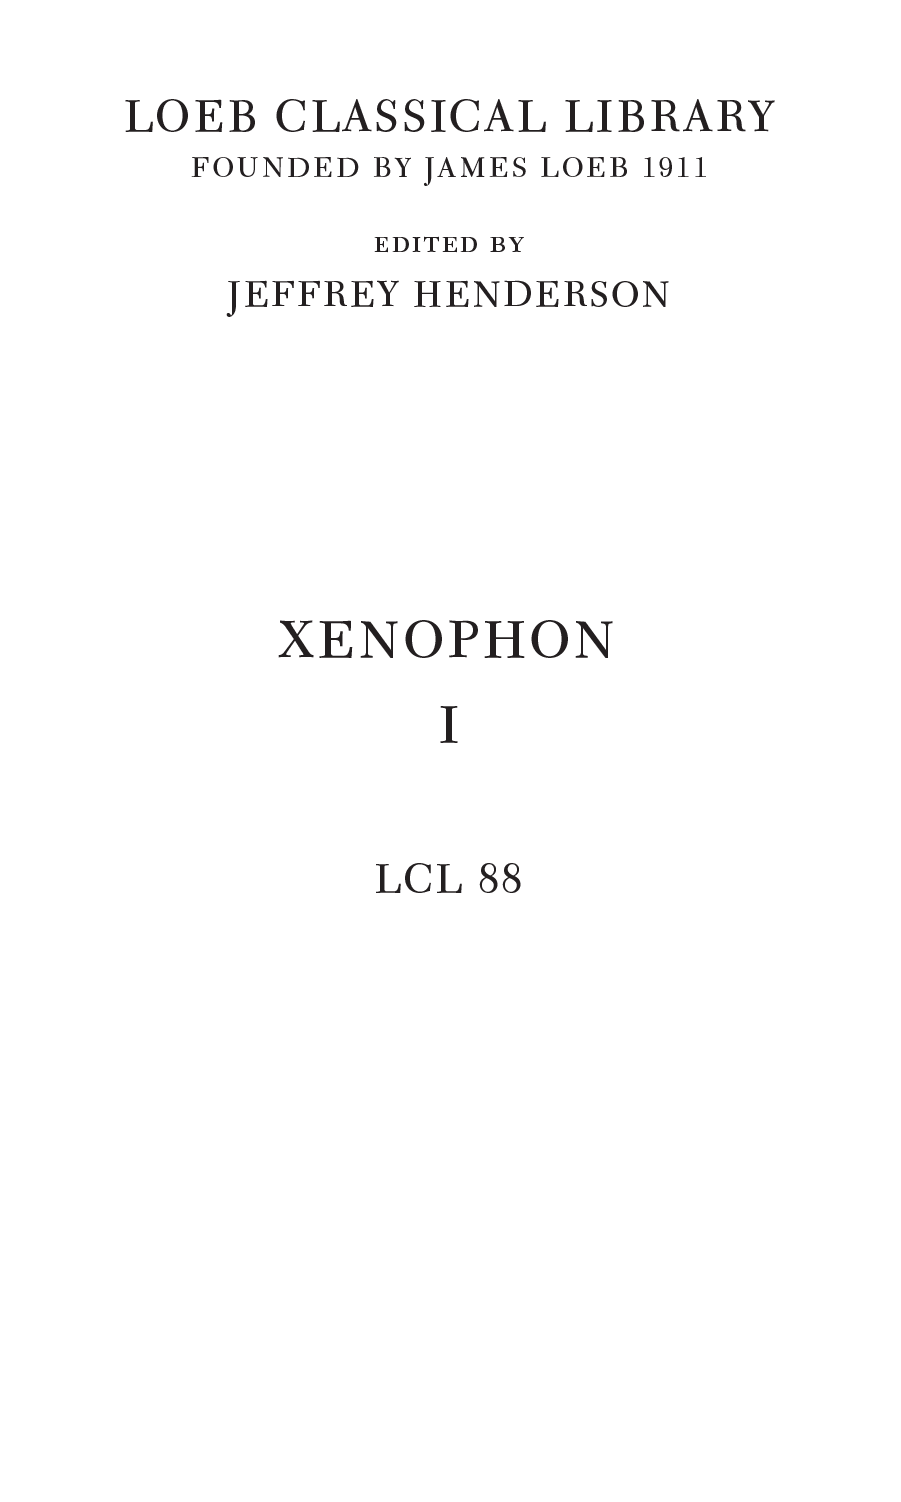 LOEB CLASSICAL LIBRARY FOUNDED BY JAMES LOEB 1911 edited by JEFFREY HENDERSON XENOPHON I LCL 88